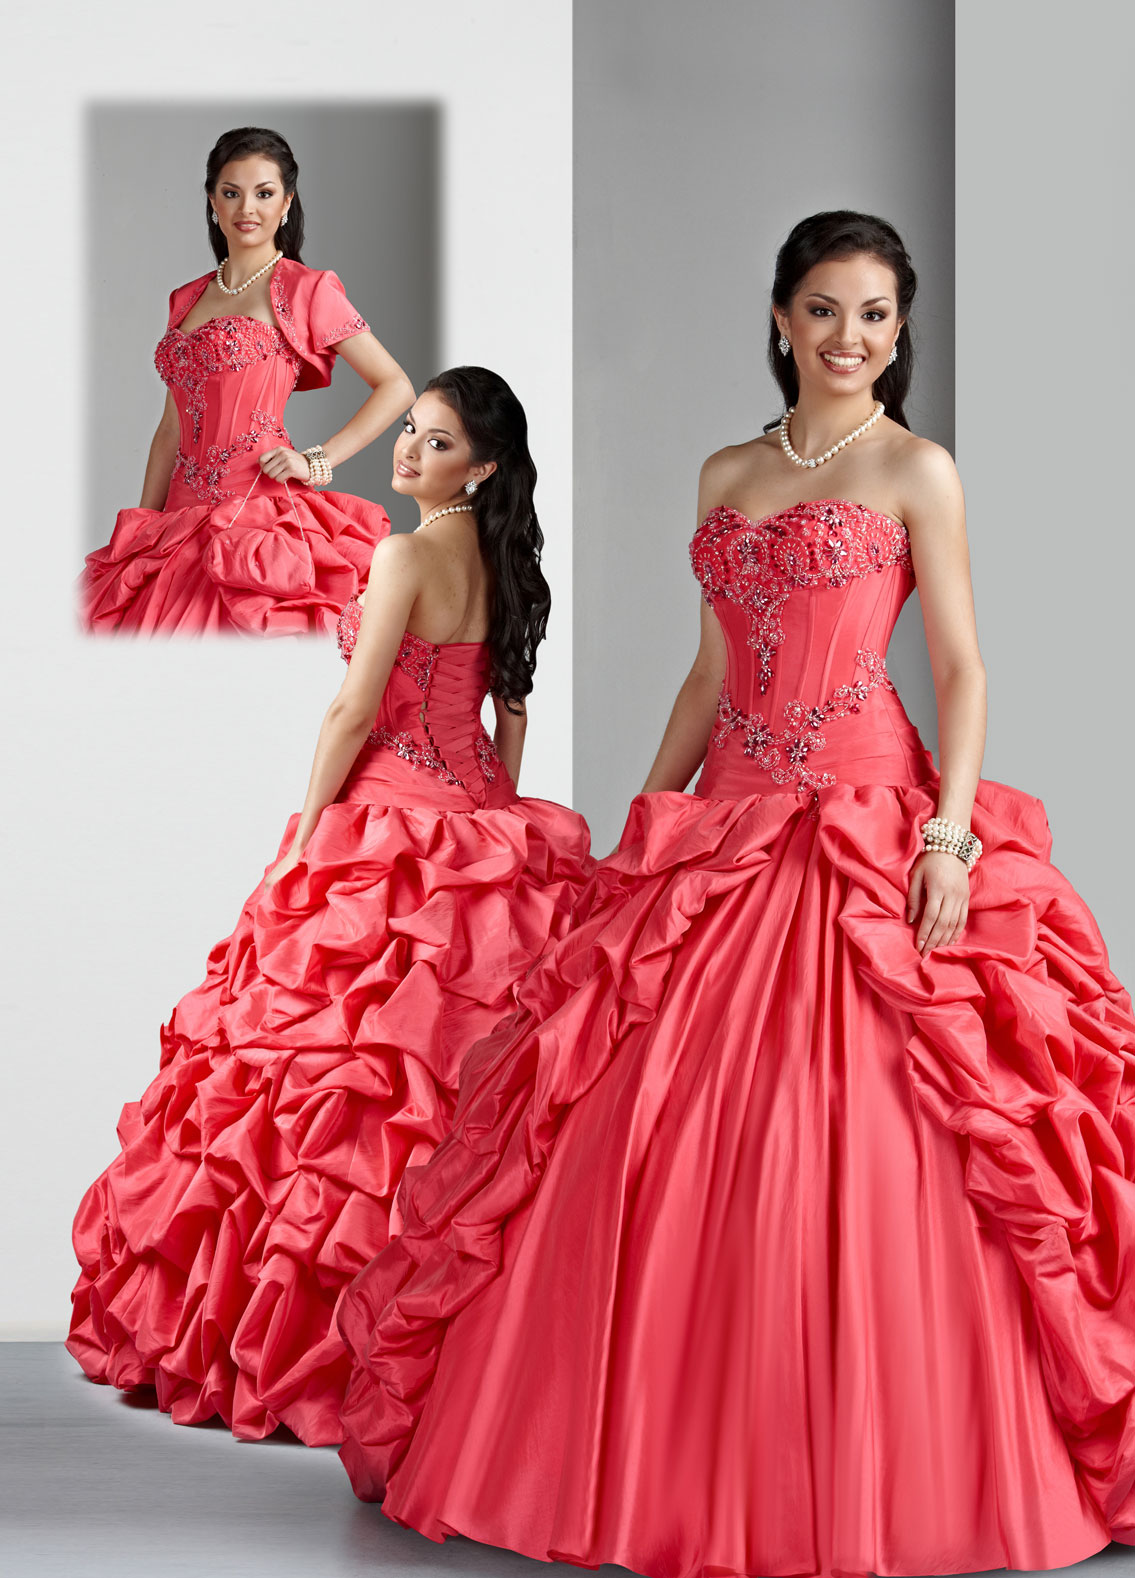 Watermelon Ball Gown Sweetheart And Strapless Lace Up Floor Length Embroidered Ruched Tatteta Quinceanera Dresses